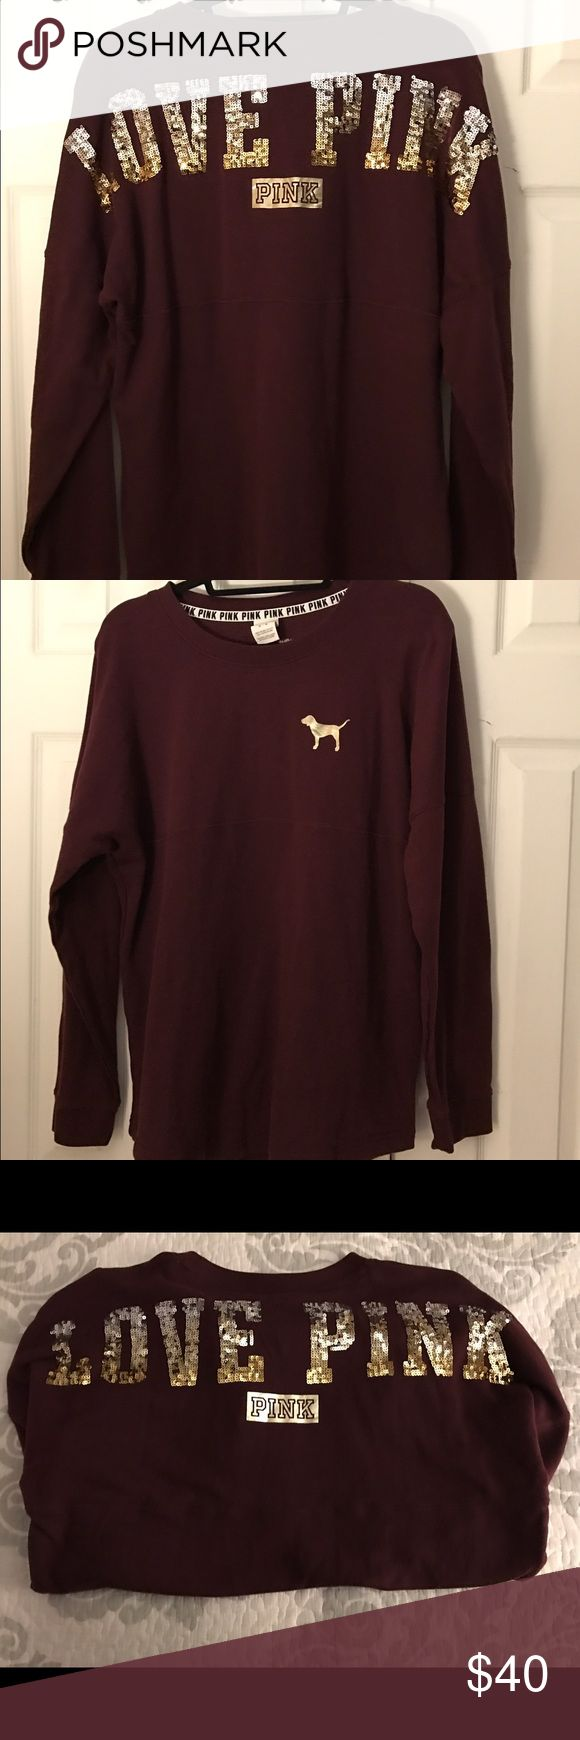 """EUC Victoria'sSecret Pink Maroon sweatshirt size-M EUC Victoria's Secret Pink sweatshirt in the sold out color-Maroon with the iconic pink dog on the right shoulder in gold & on the back """"LOVE PINK"""" in gold & silver sequins w/ pink in gold below it, from a smoke free home , tried on & taken good care of . PINK Victoria's Secret Tops Sweatshirts & Hoodies"""